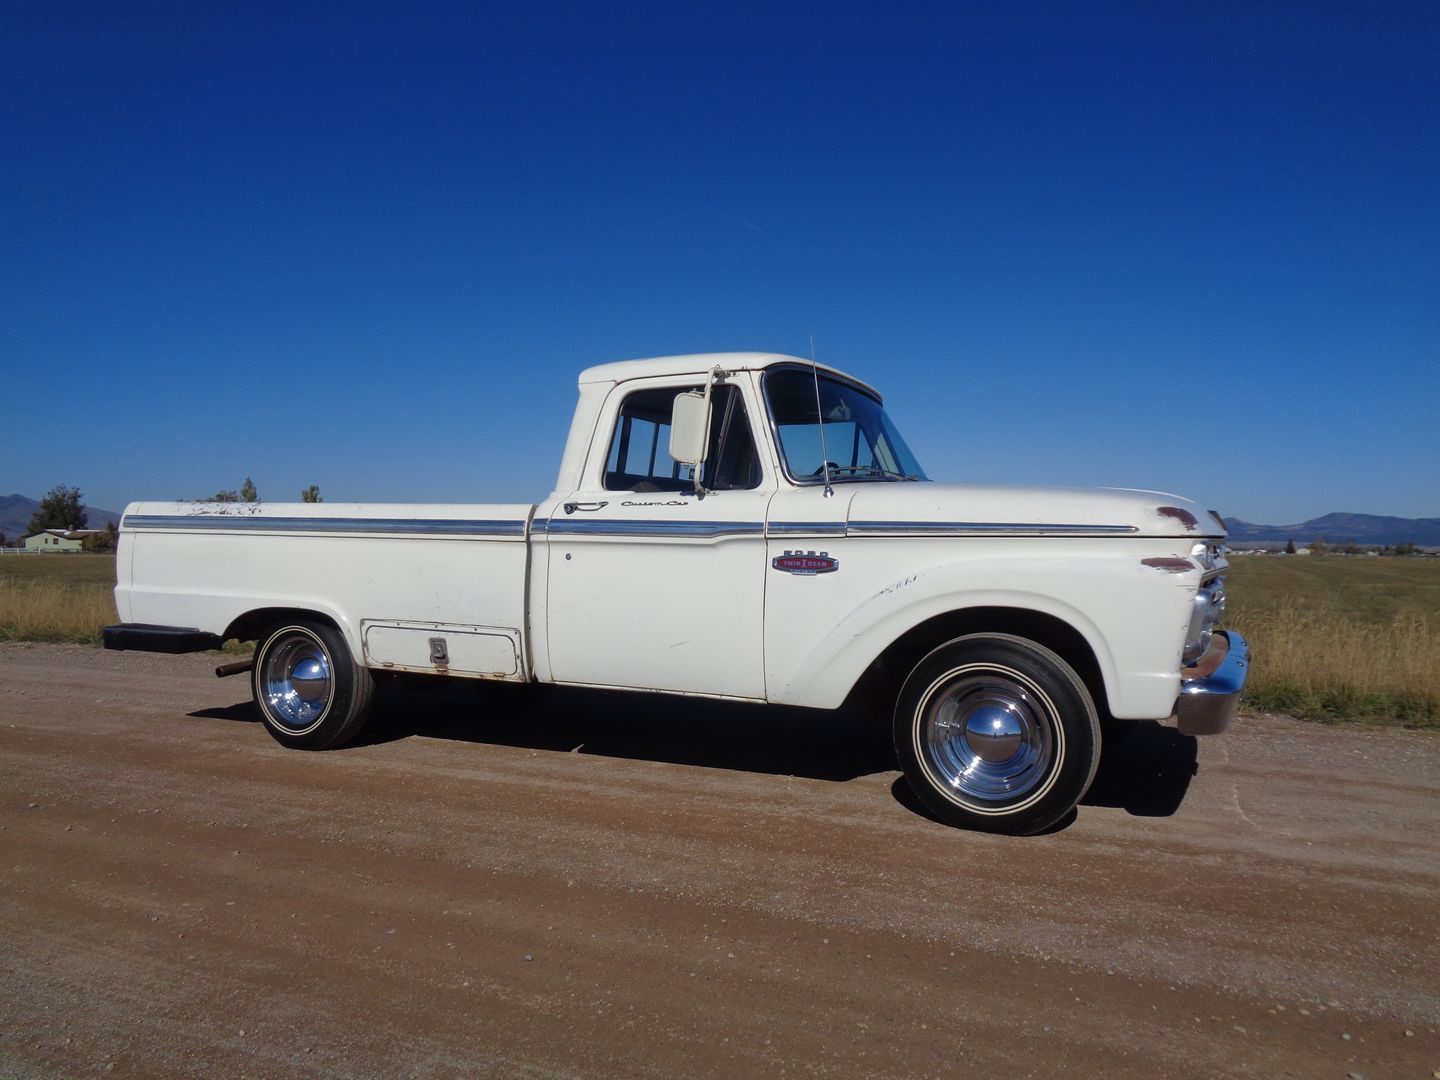 Ford F-100 Truck 1966 - MBB Collection